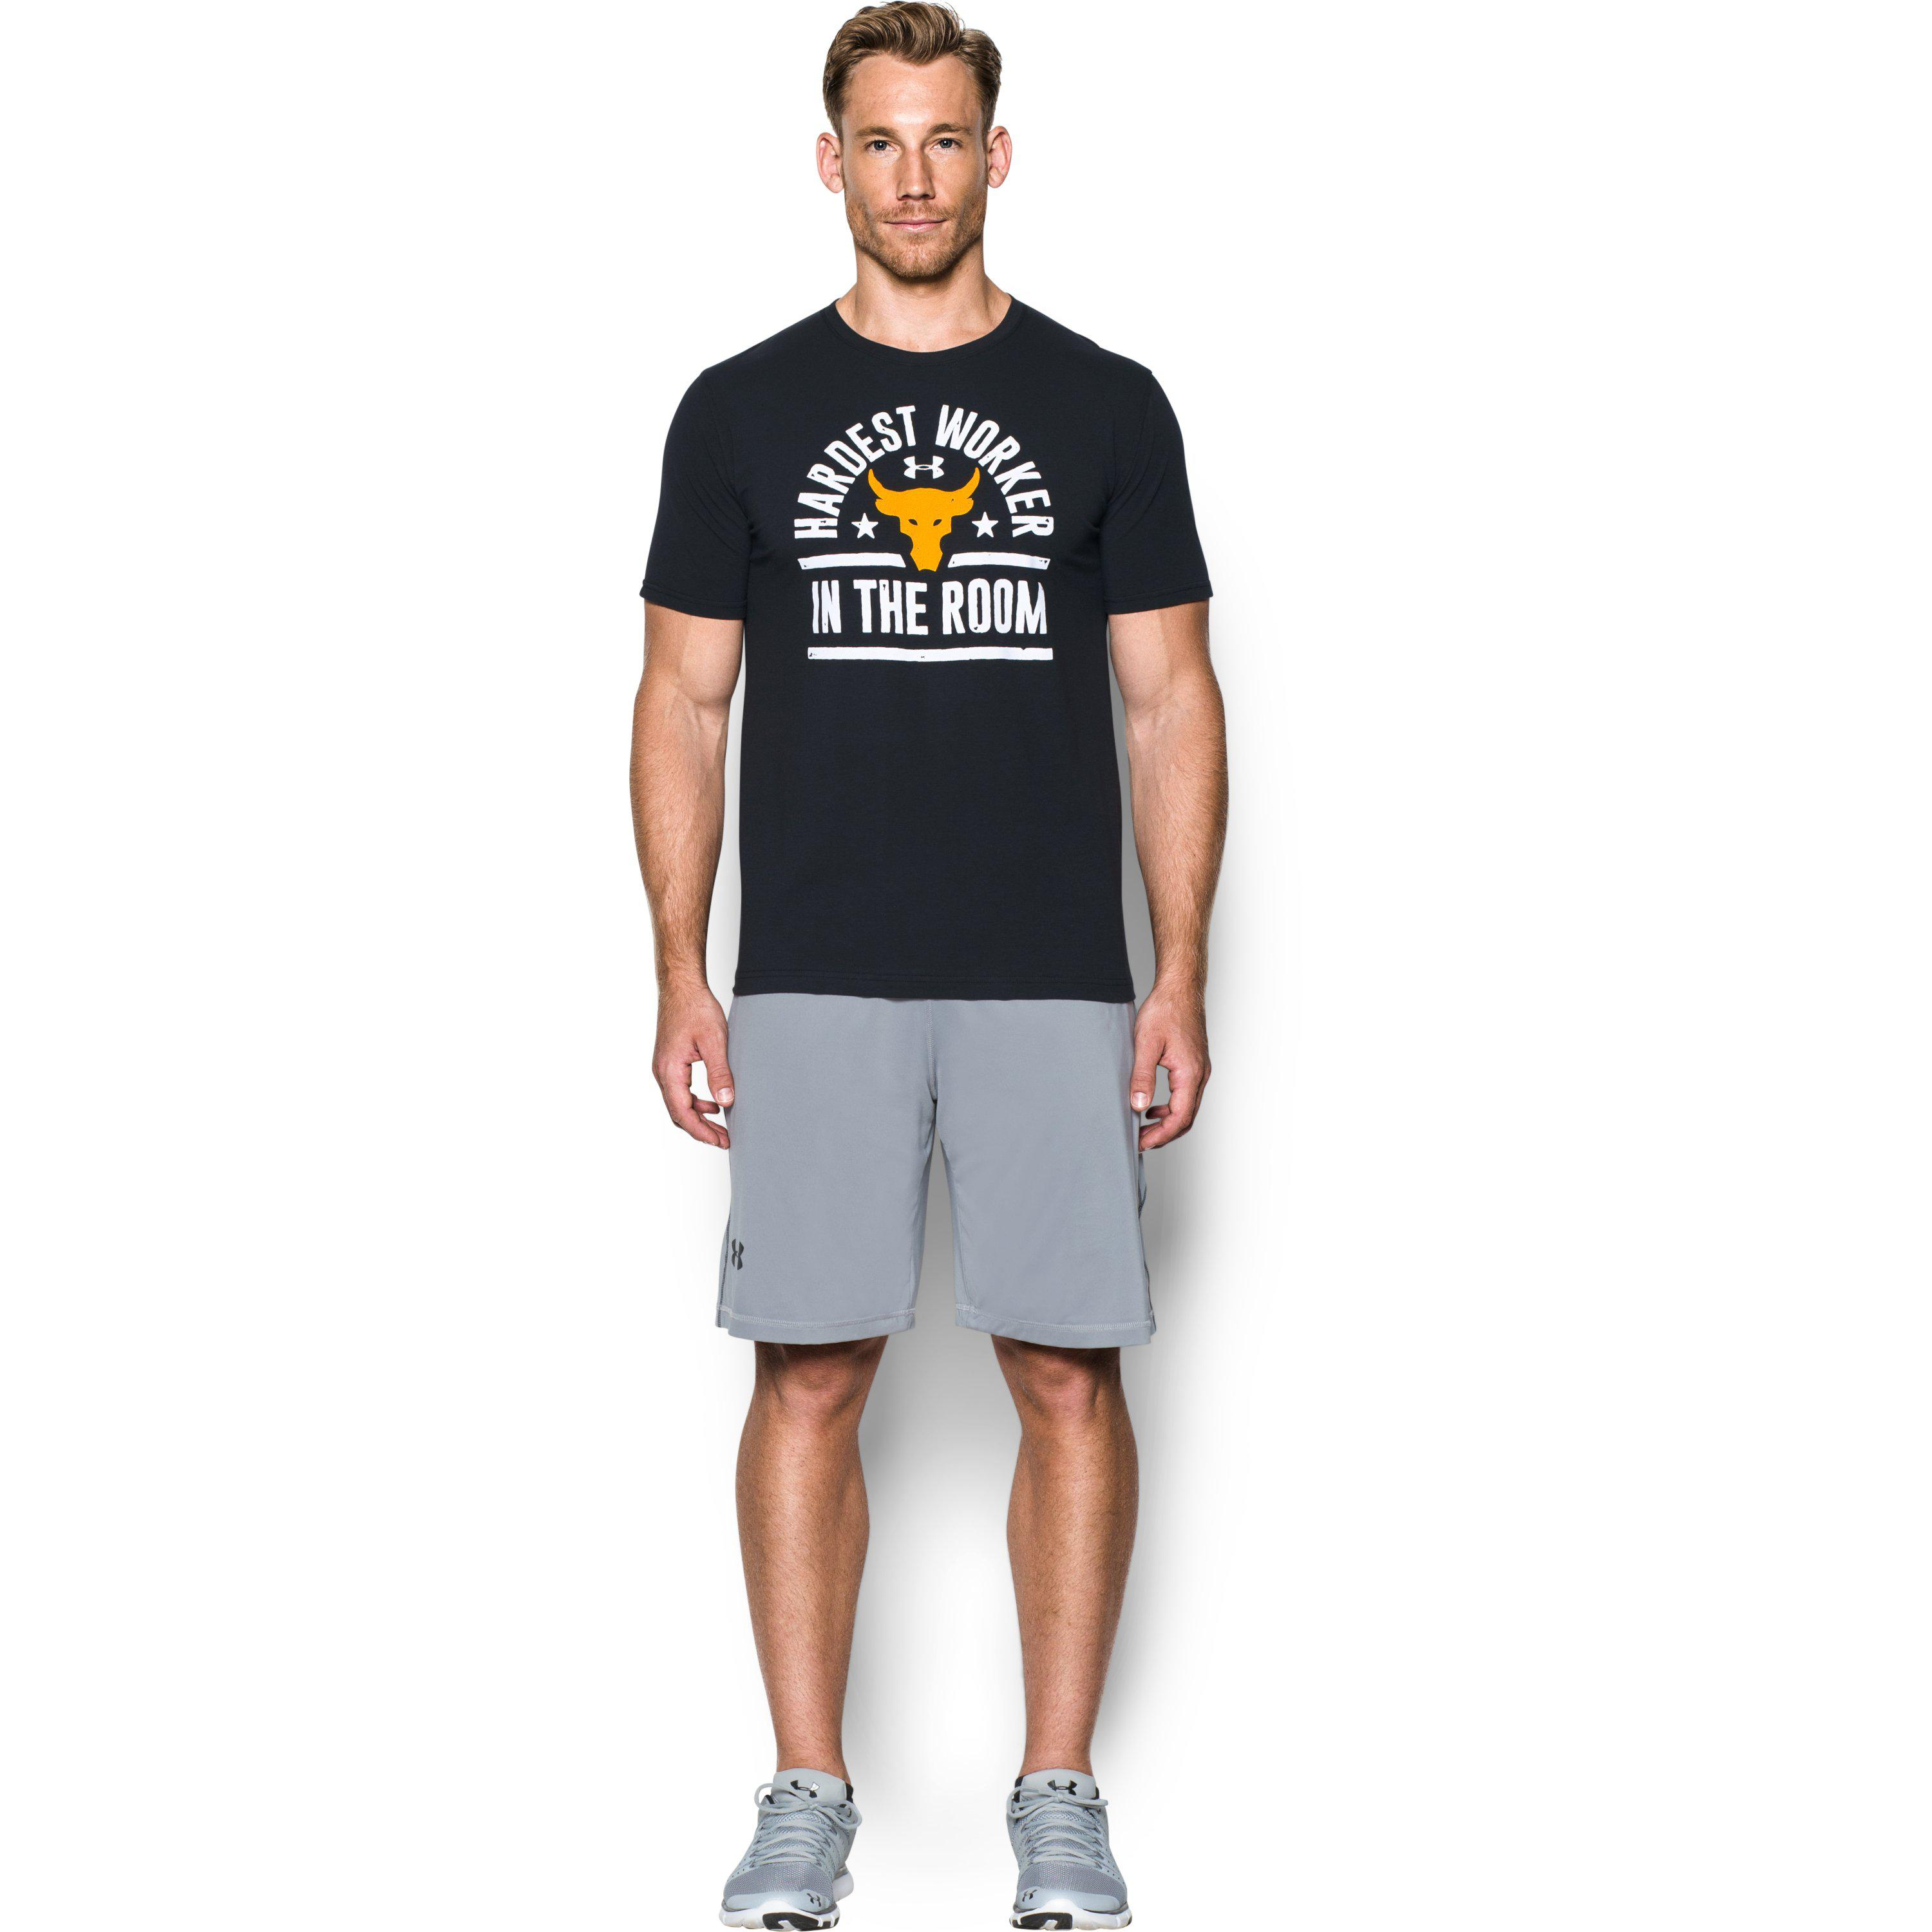 76394e586 Under Armour Men's Ua X Project Rock Hardest Worker T-shirt in Black ...